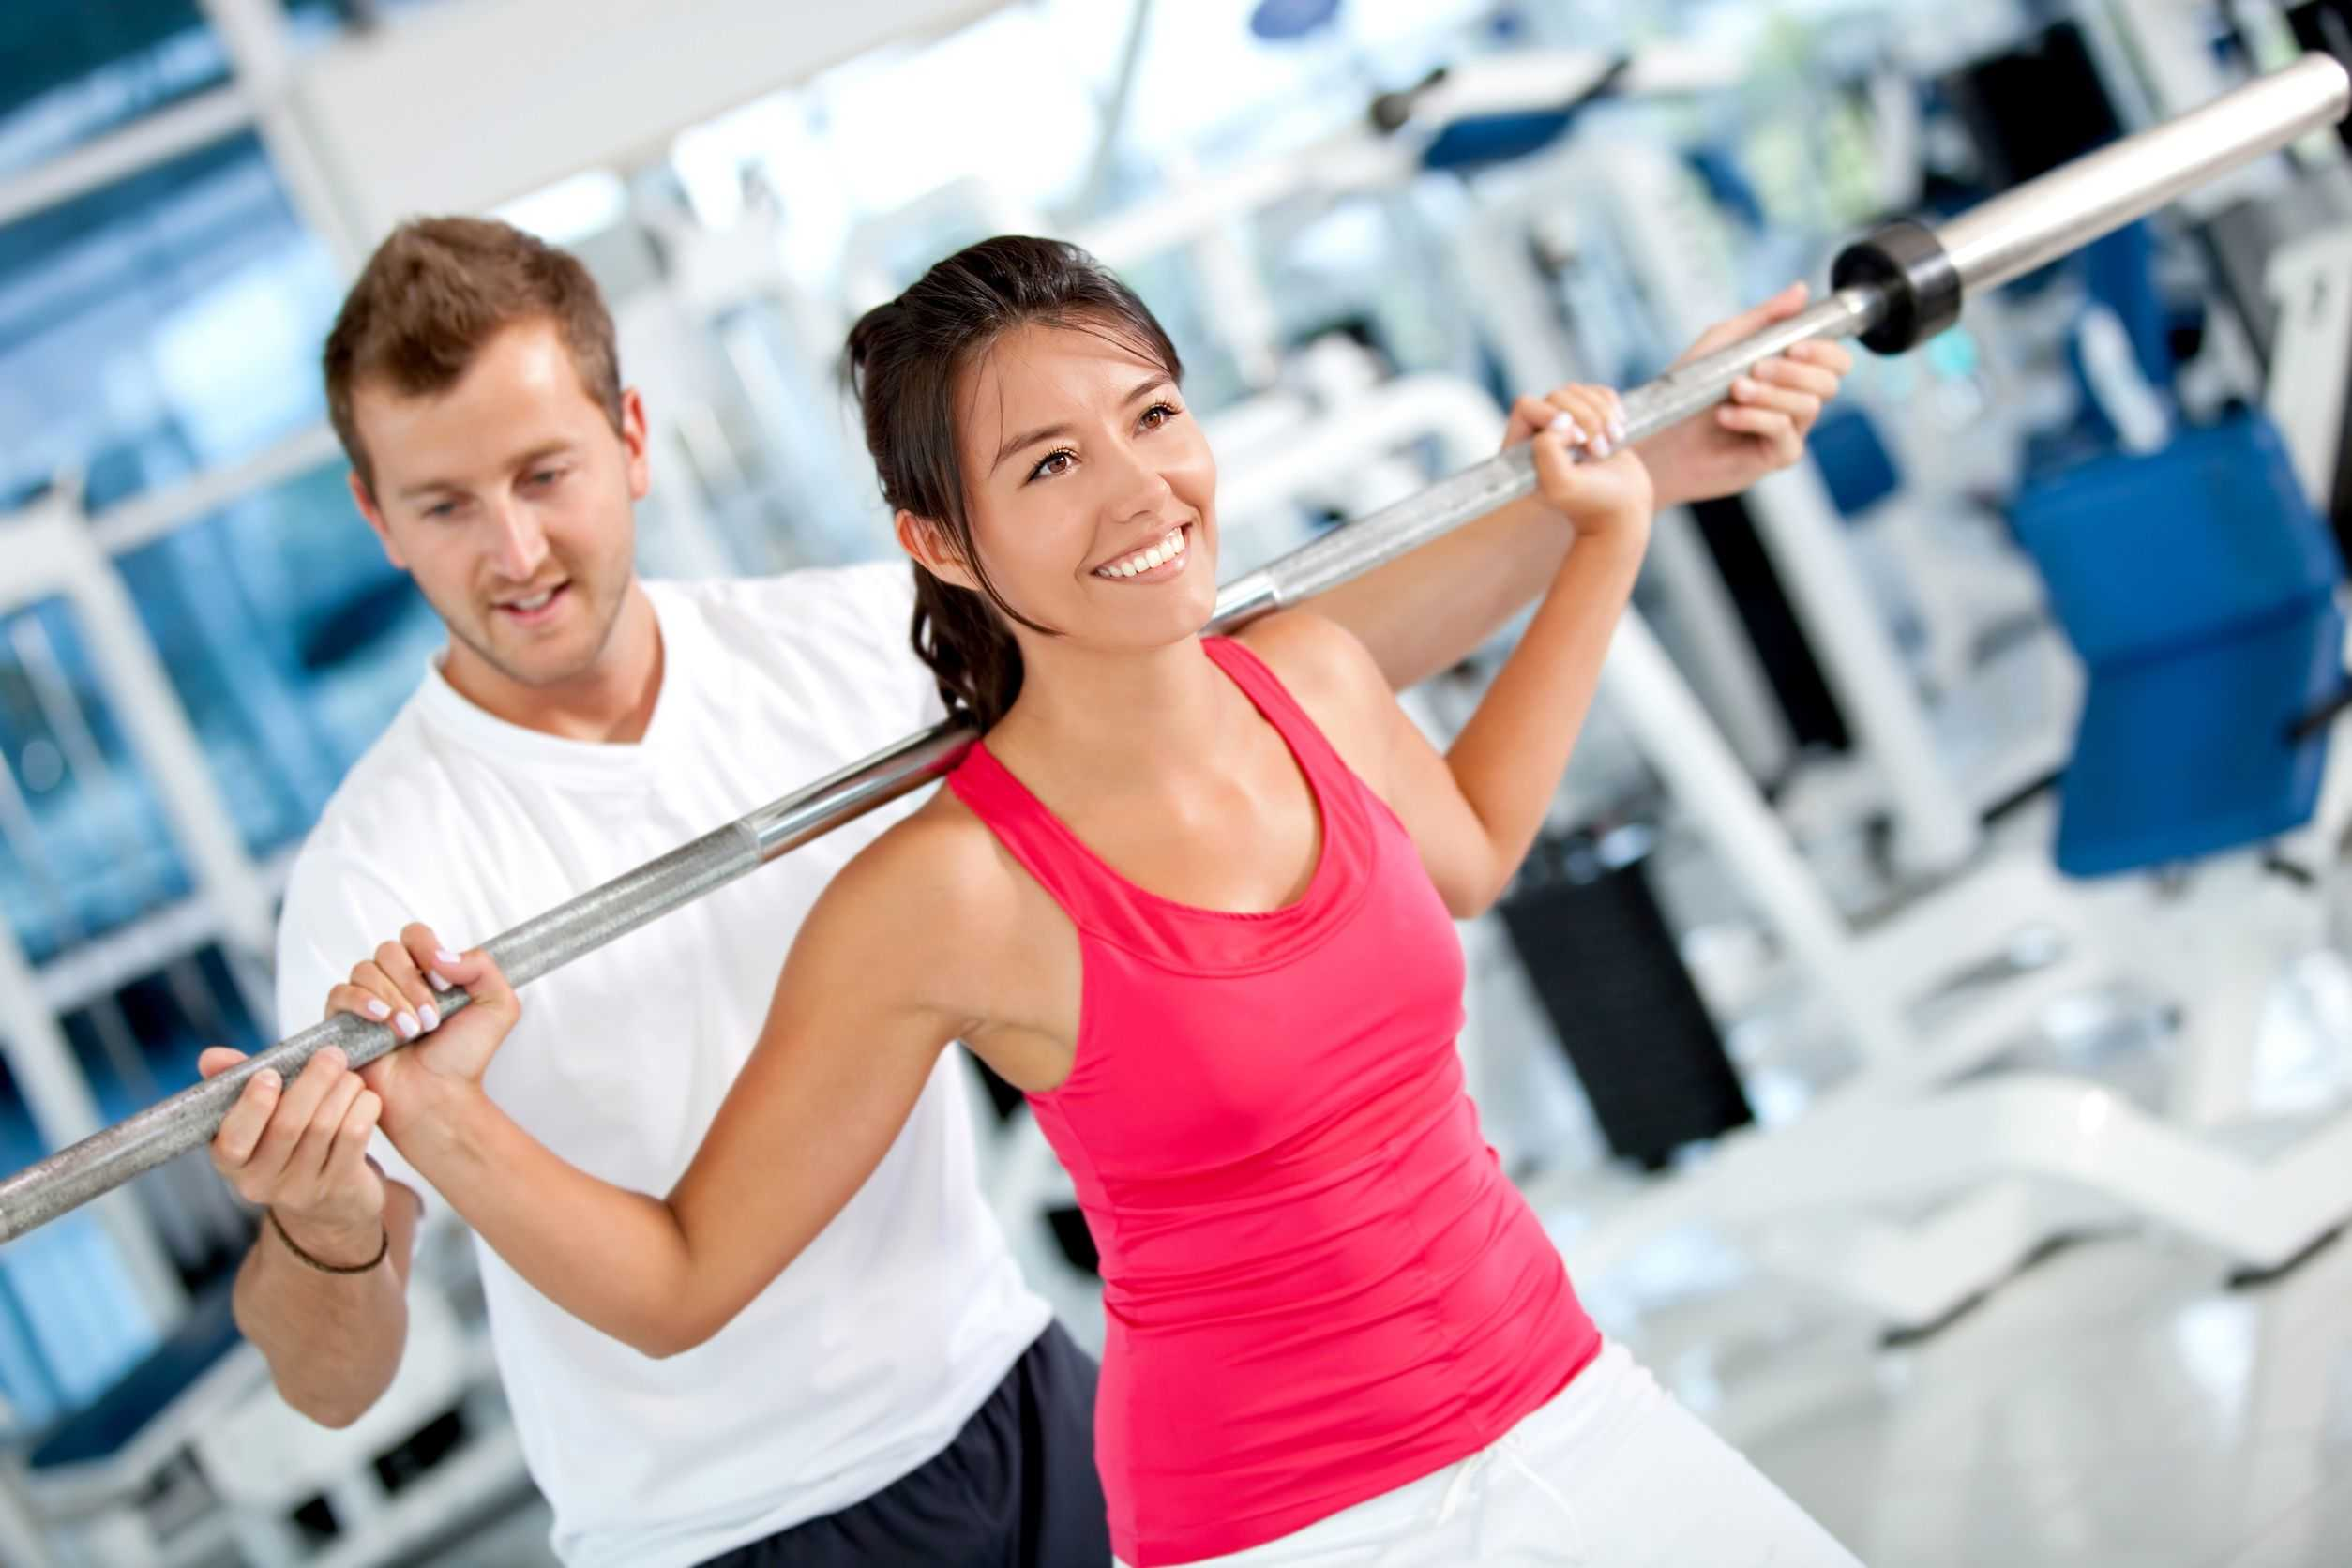 Personal-Training-1 Simple Lifestyle Changes to Make Acne Go Away